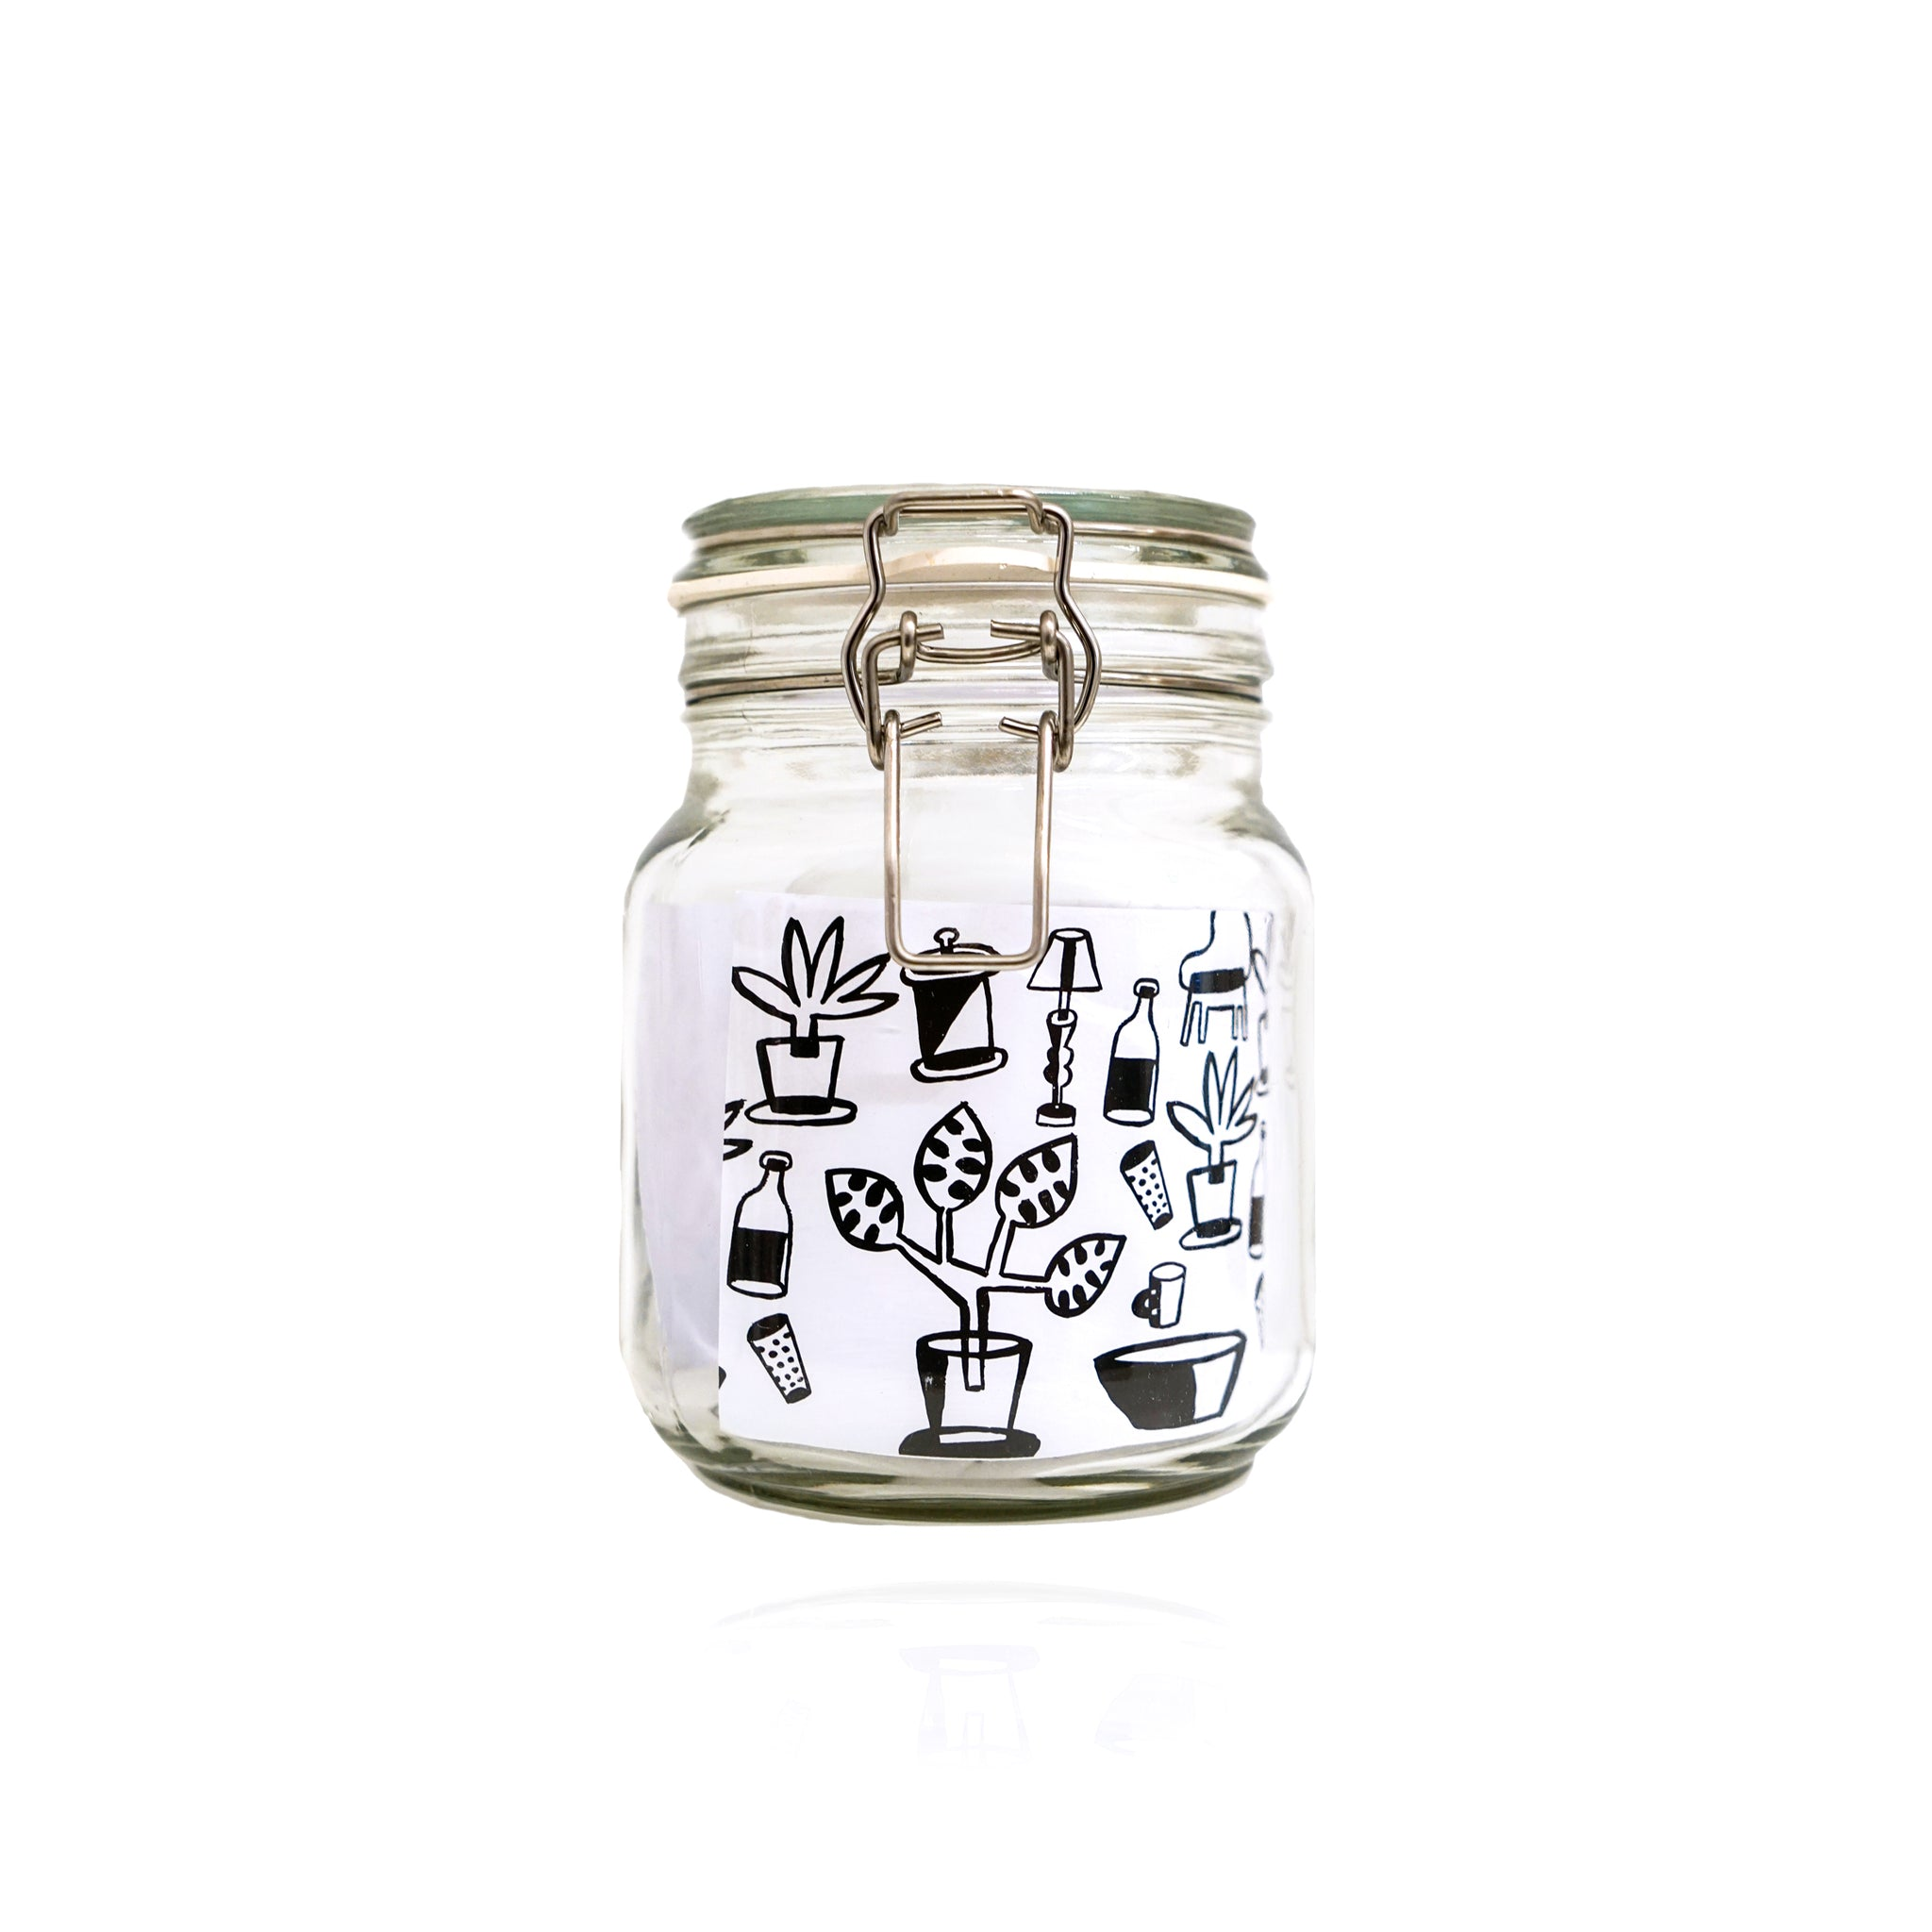 Glass Jar Abenk Alter x Art Dept ID